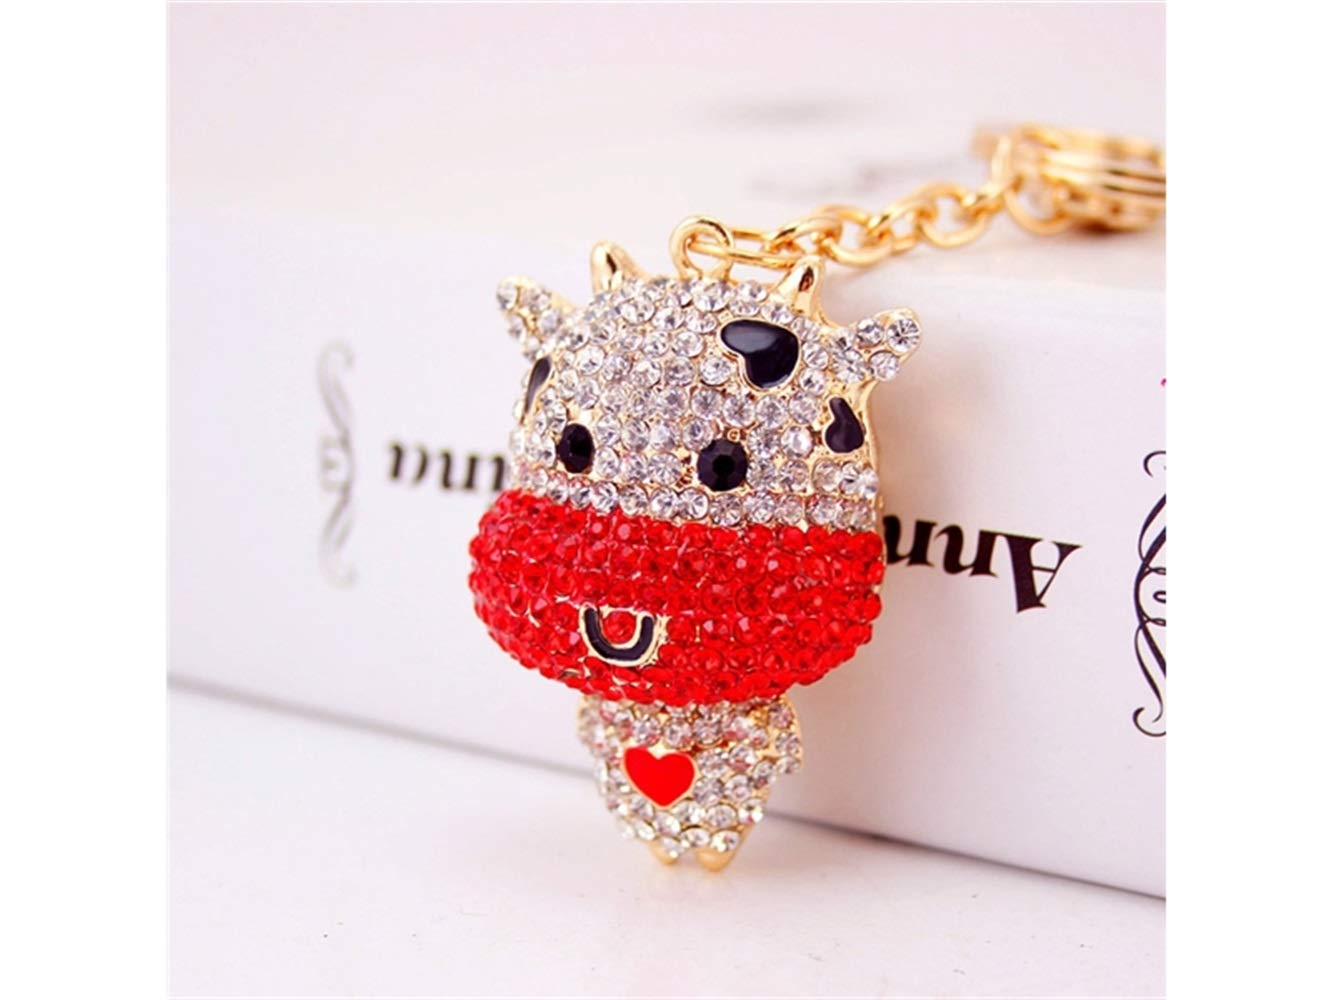 Car Keychain, Diamond Chinese Zodiac Cattle Keychain Animal Shape Key Trinket Car Bag Key Holder Decorations(Red) for Gift